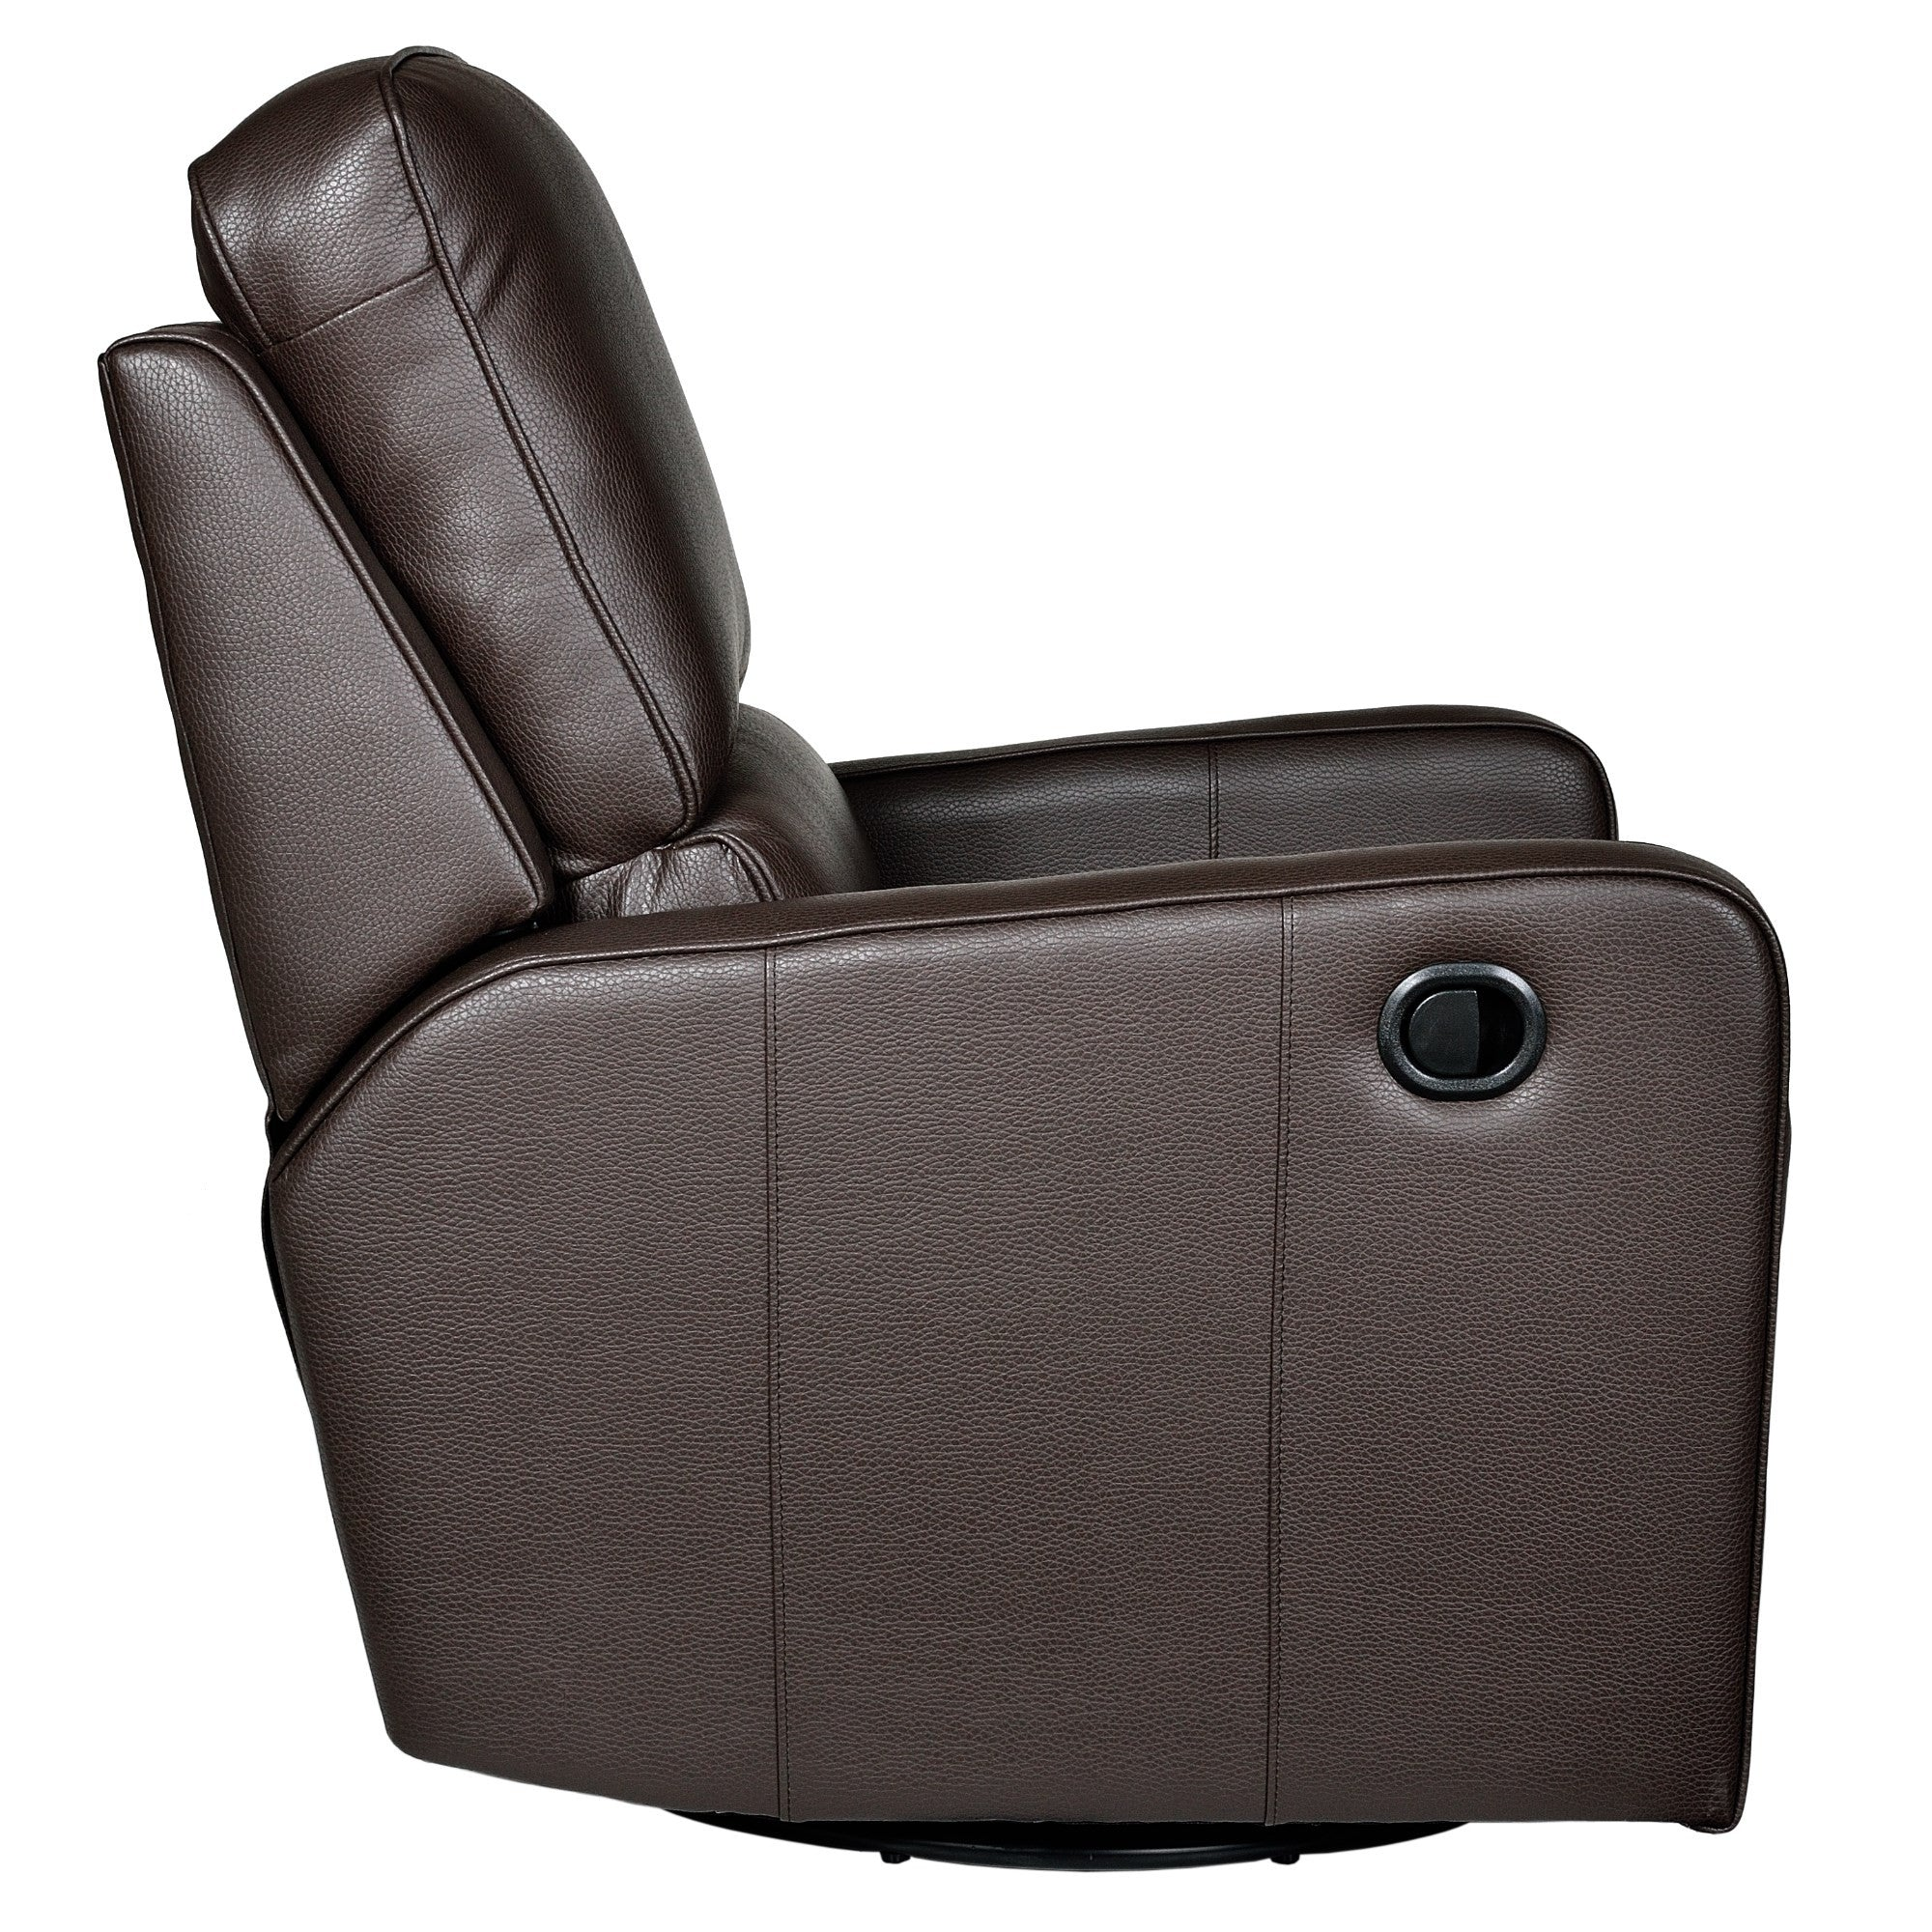 PERTH SWIVEL ROCKER RECLINER - Somerset Mocha  sc 1 st  shopcomfortclub & PERTH SWIVEL ROCKER RECLINER - Diego Mocha islam-shia.org